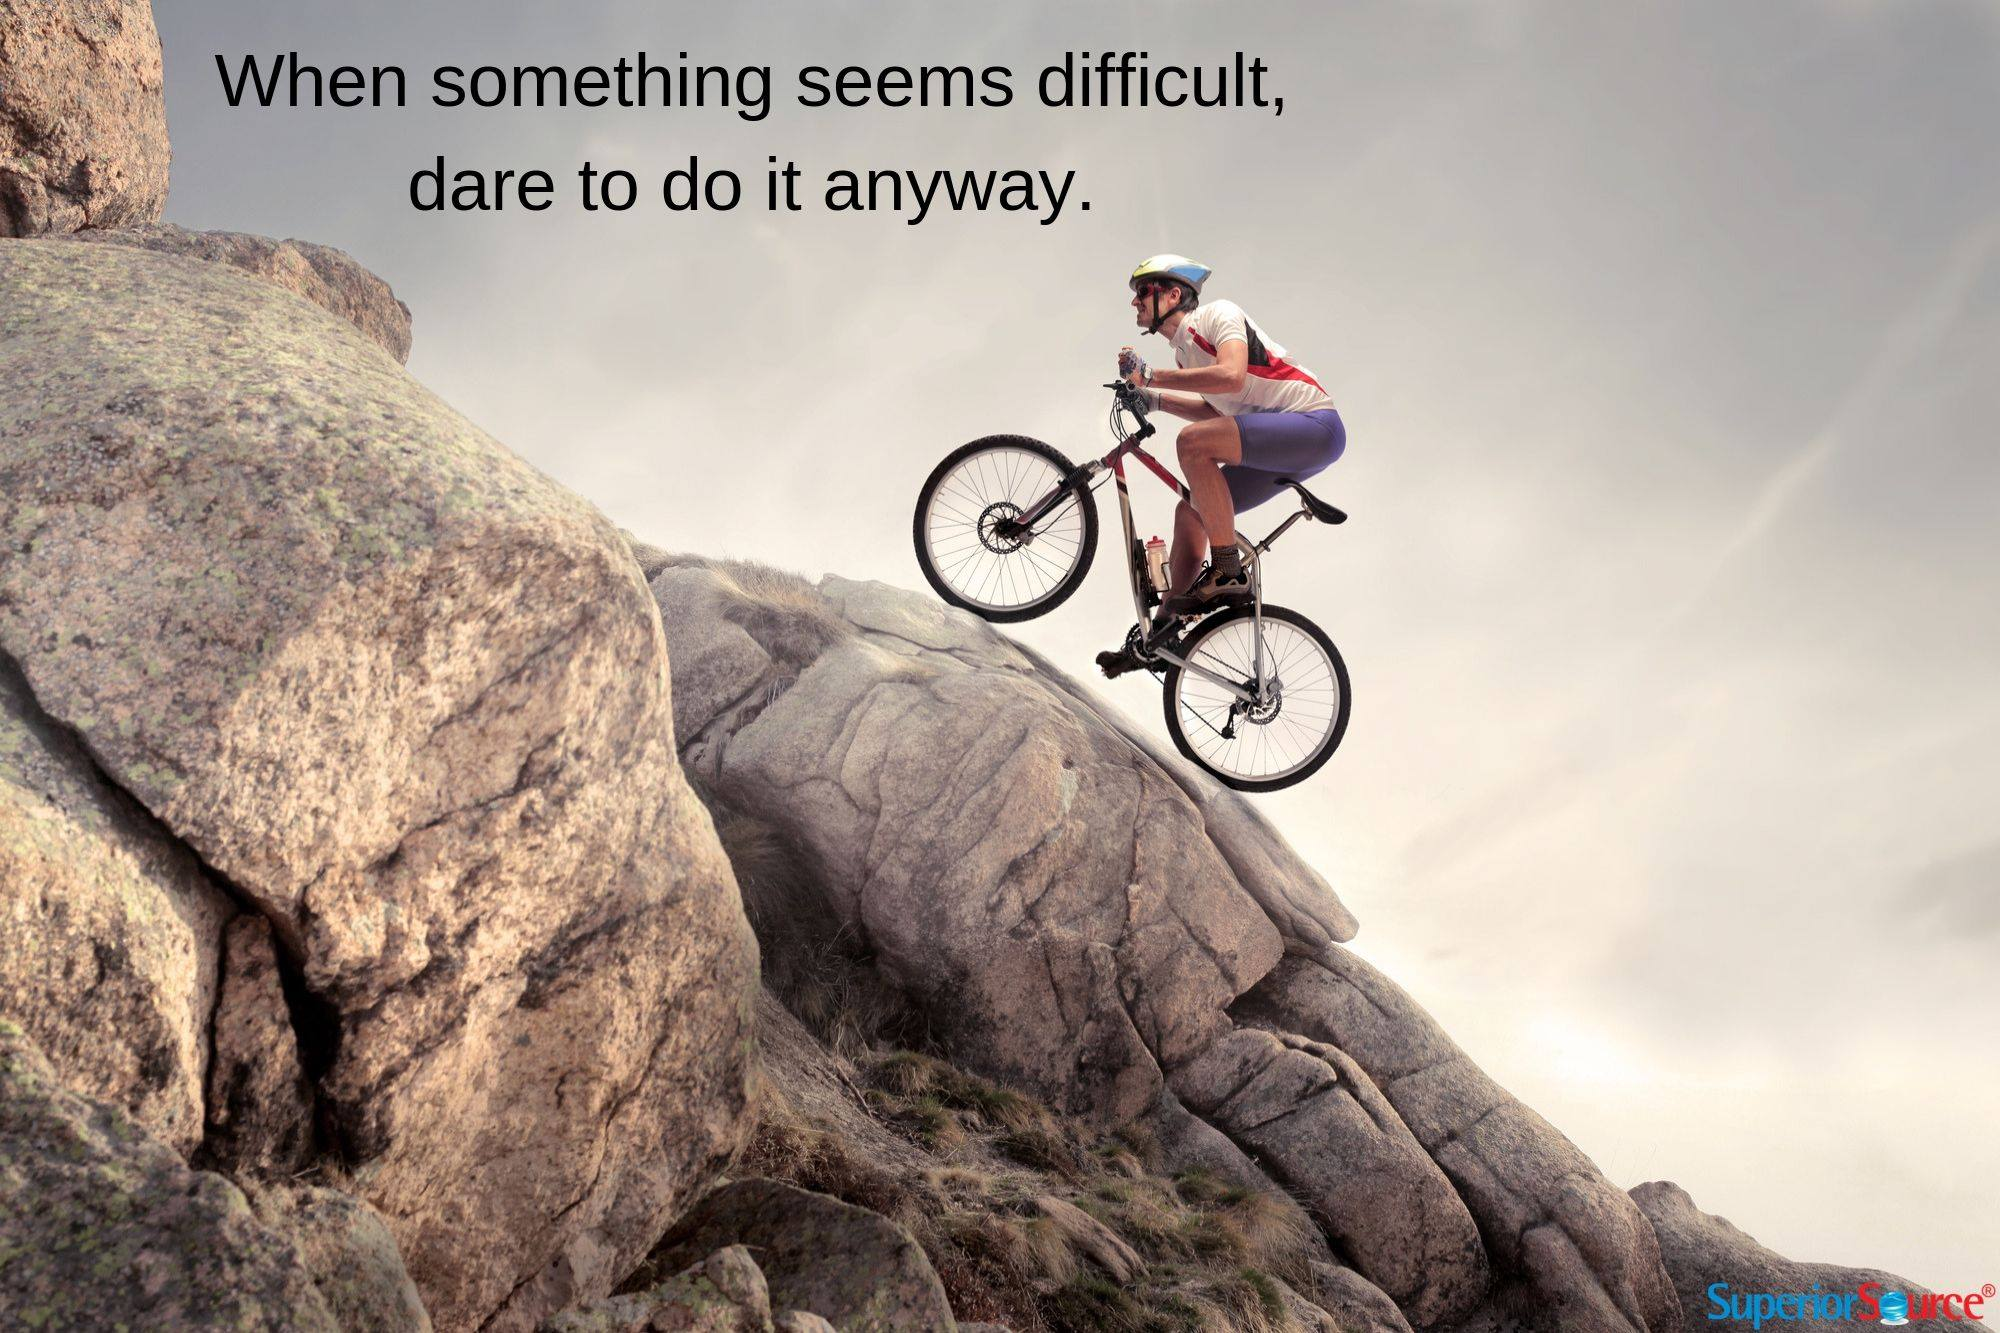 Superior Source - When Something Seems Difficult, Dare to Do It Anyway